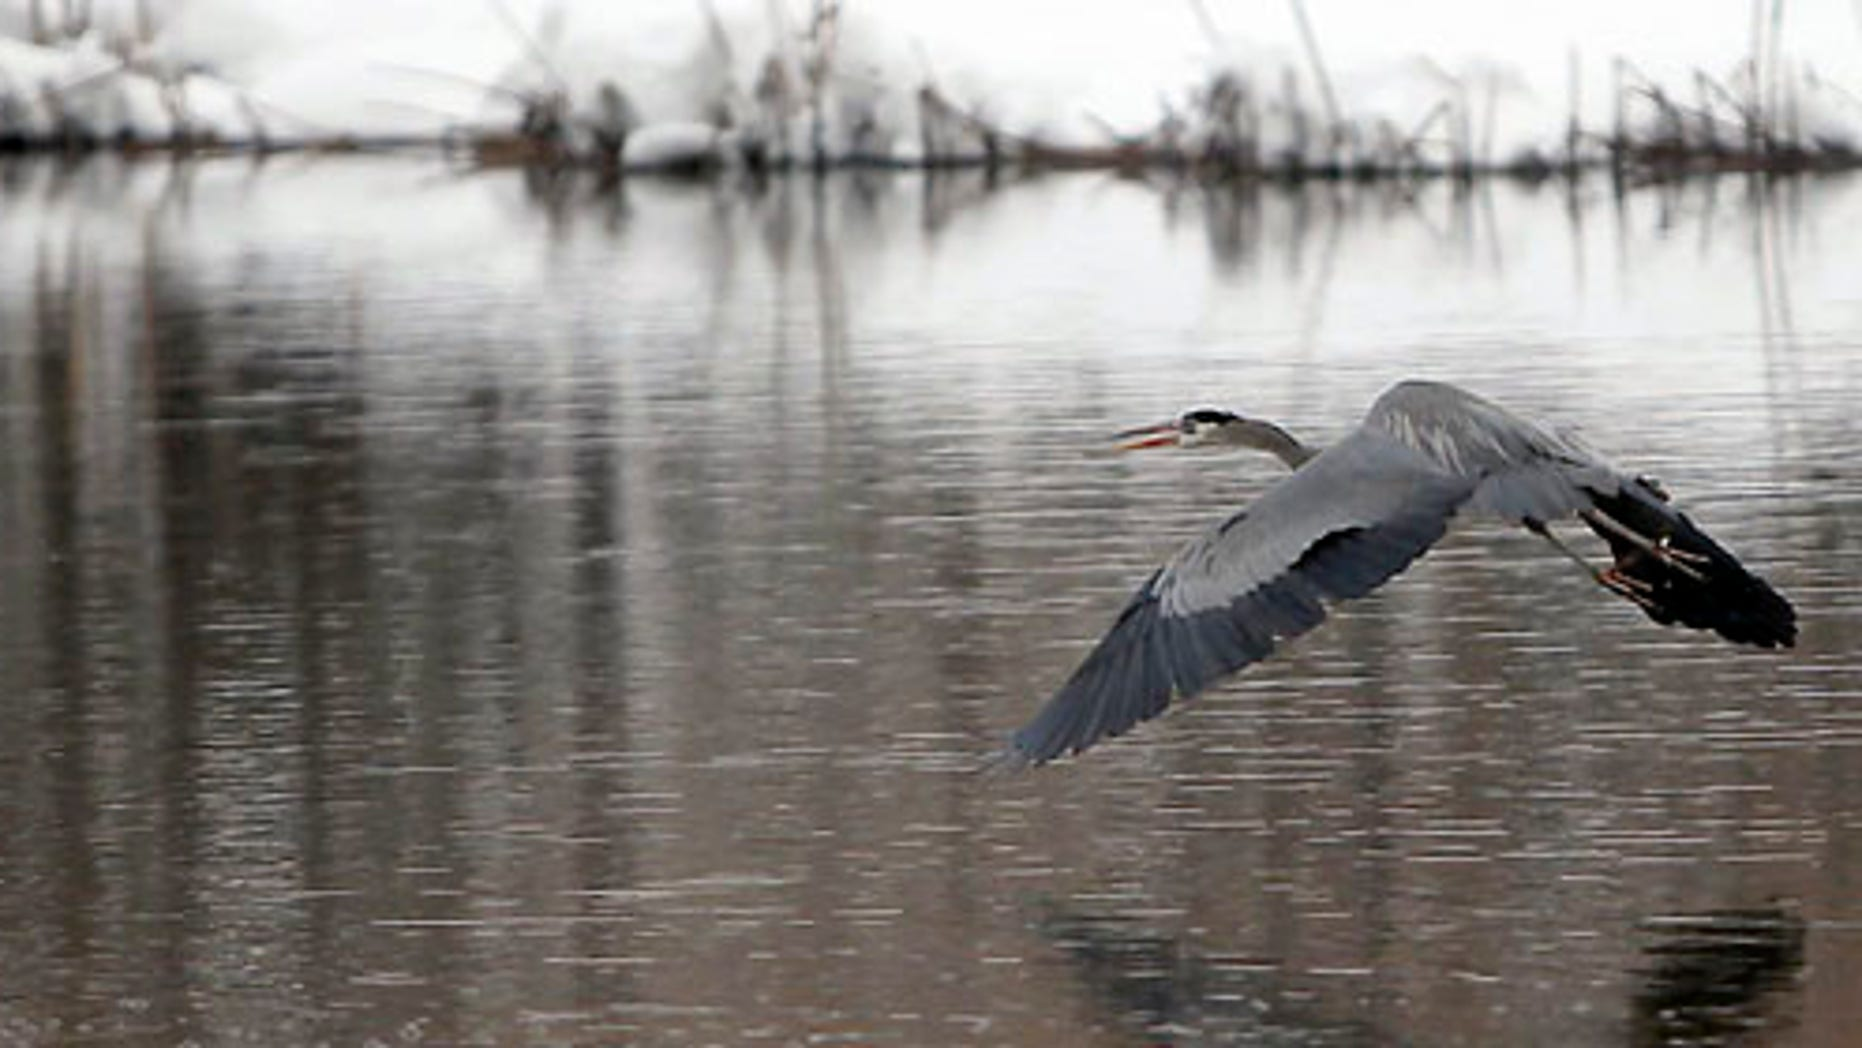 A heron flies across the Frances Short pond Monday afternoon, March 19, 2012 in Flagstaff, Ariz. as snow continues to fall from a winter storm that has already dropped more than 24 inches. (AP Photo/Arizona Daily Sun, Jake Bacon)